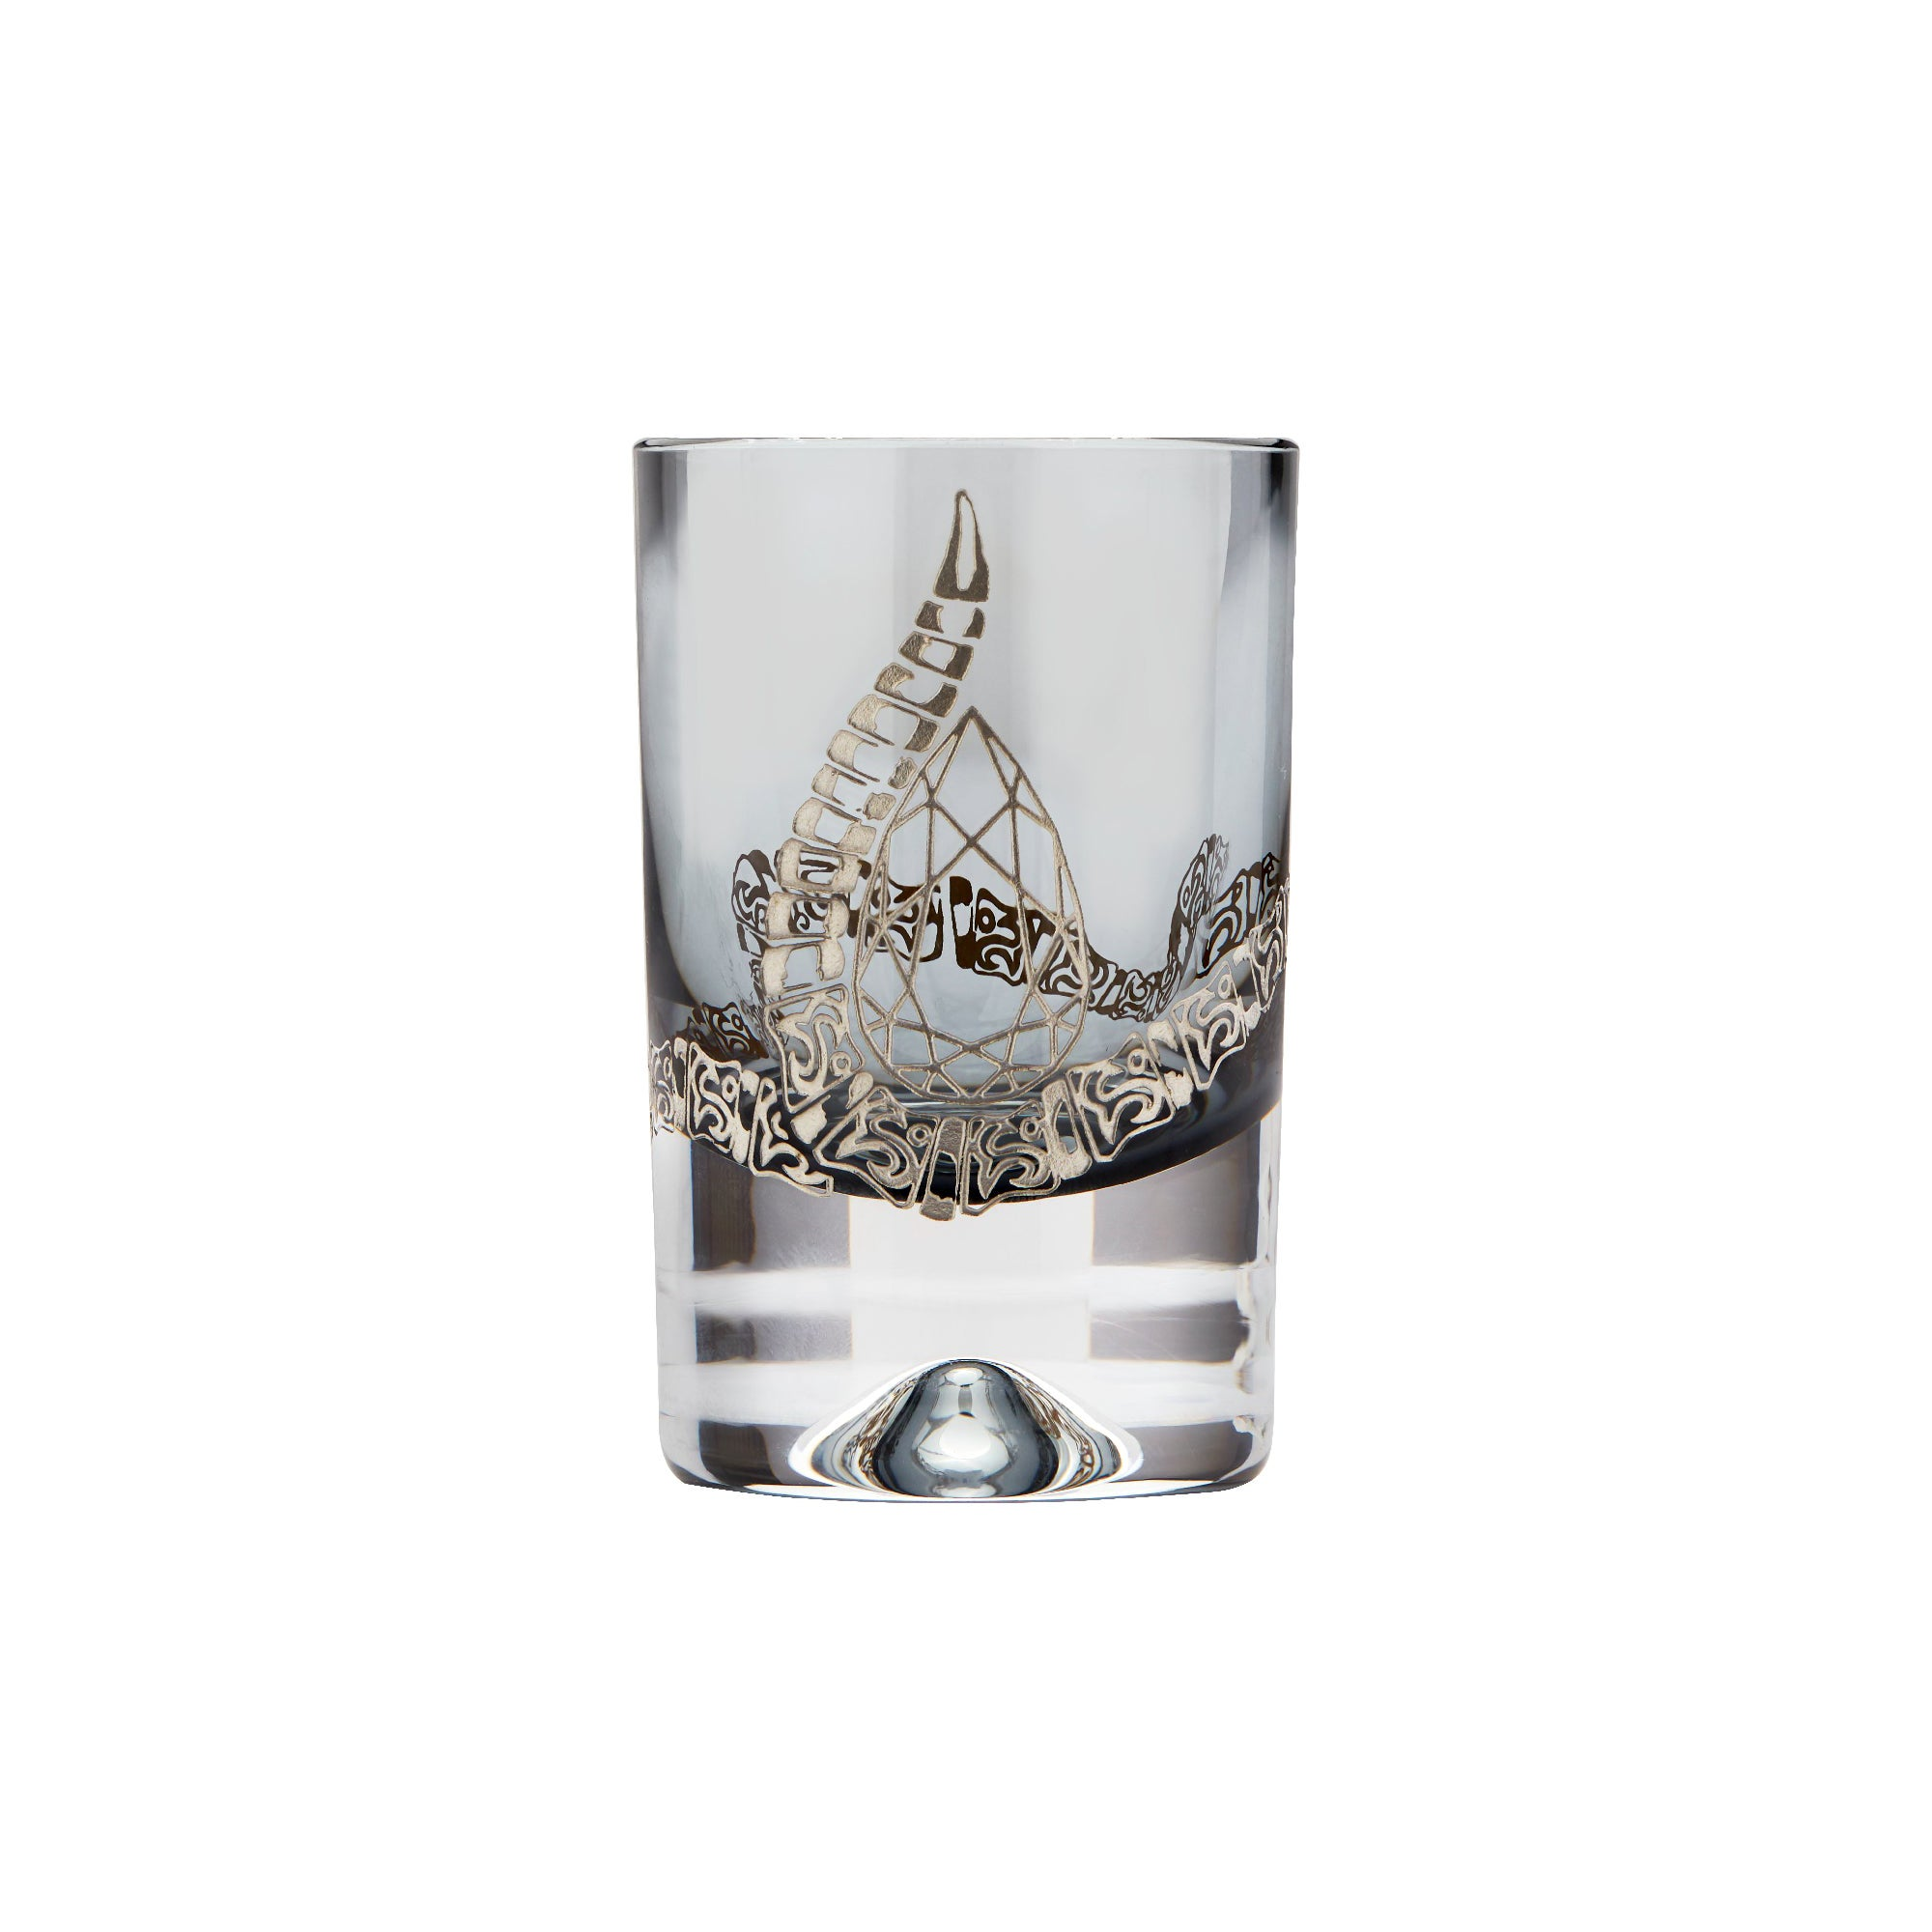 Stephen Webster Tequila Lore Rattlesnake Engraved Smoke Shot Glass - Set of 2